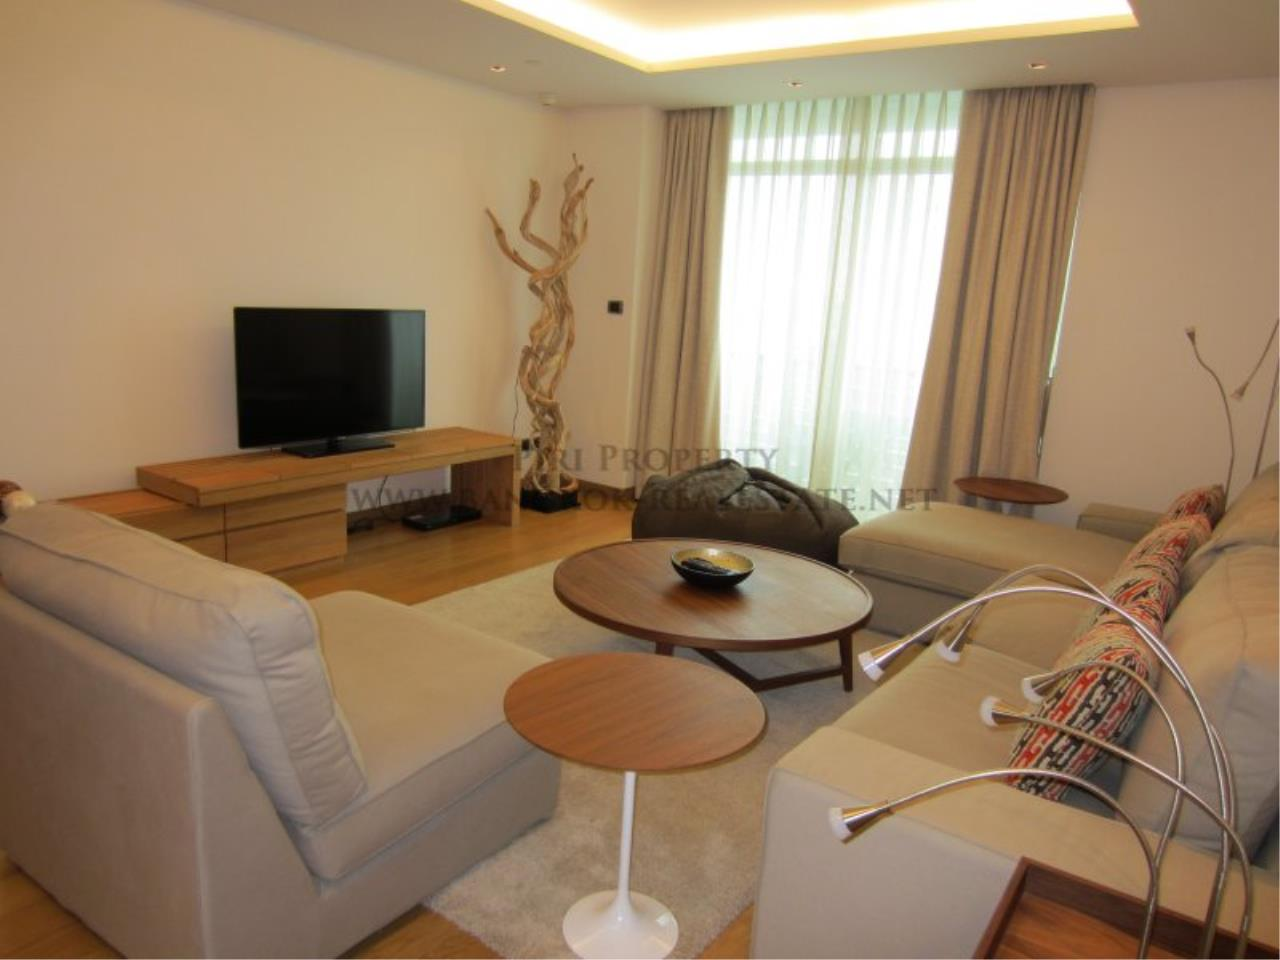 Piri Property Agency's Le Monaco - Spacious 1 Bedroom Condo for rent in Ari - Luxury Living in Ari 2